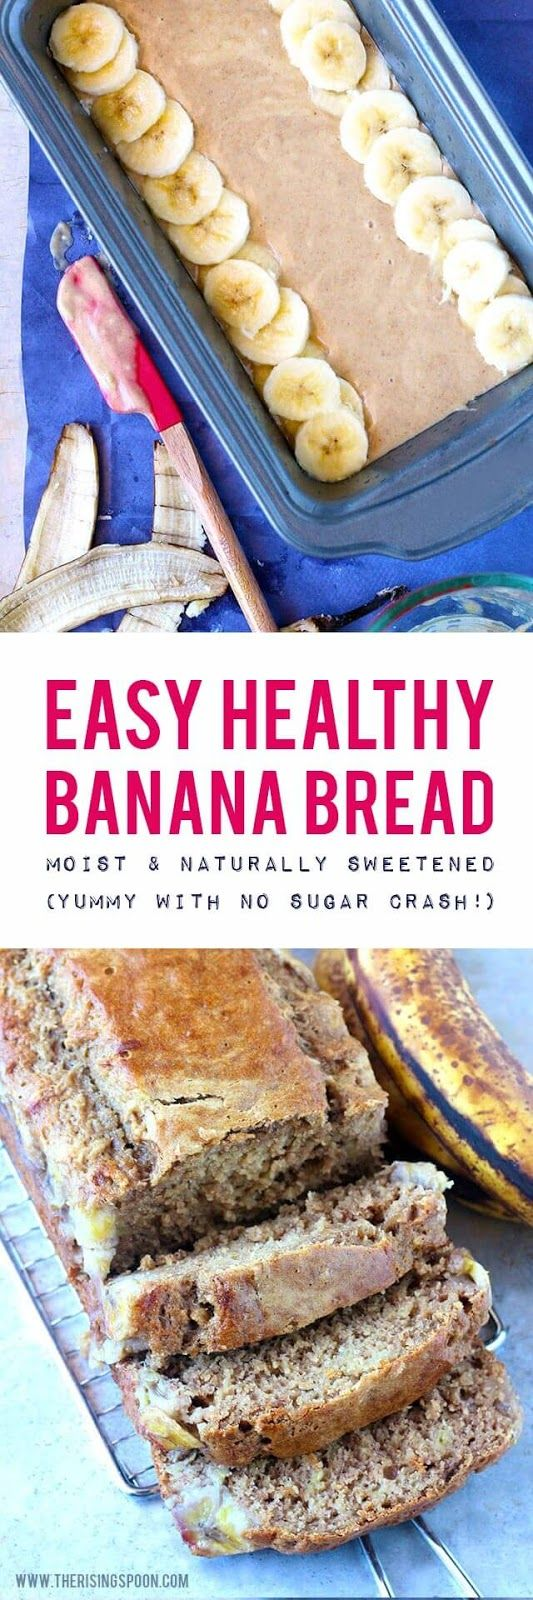 A healthy real food banana bread recipe made with a natural sweetener and higher protein flour so you can enjoy a slice or two of moist